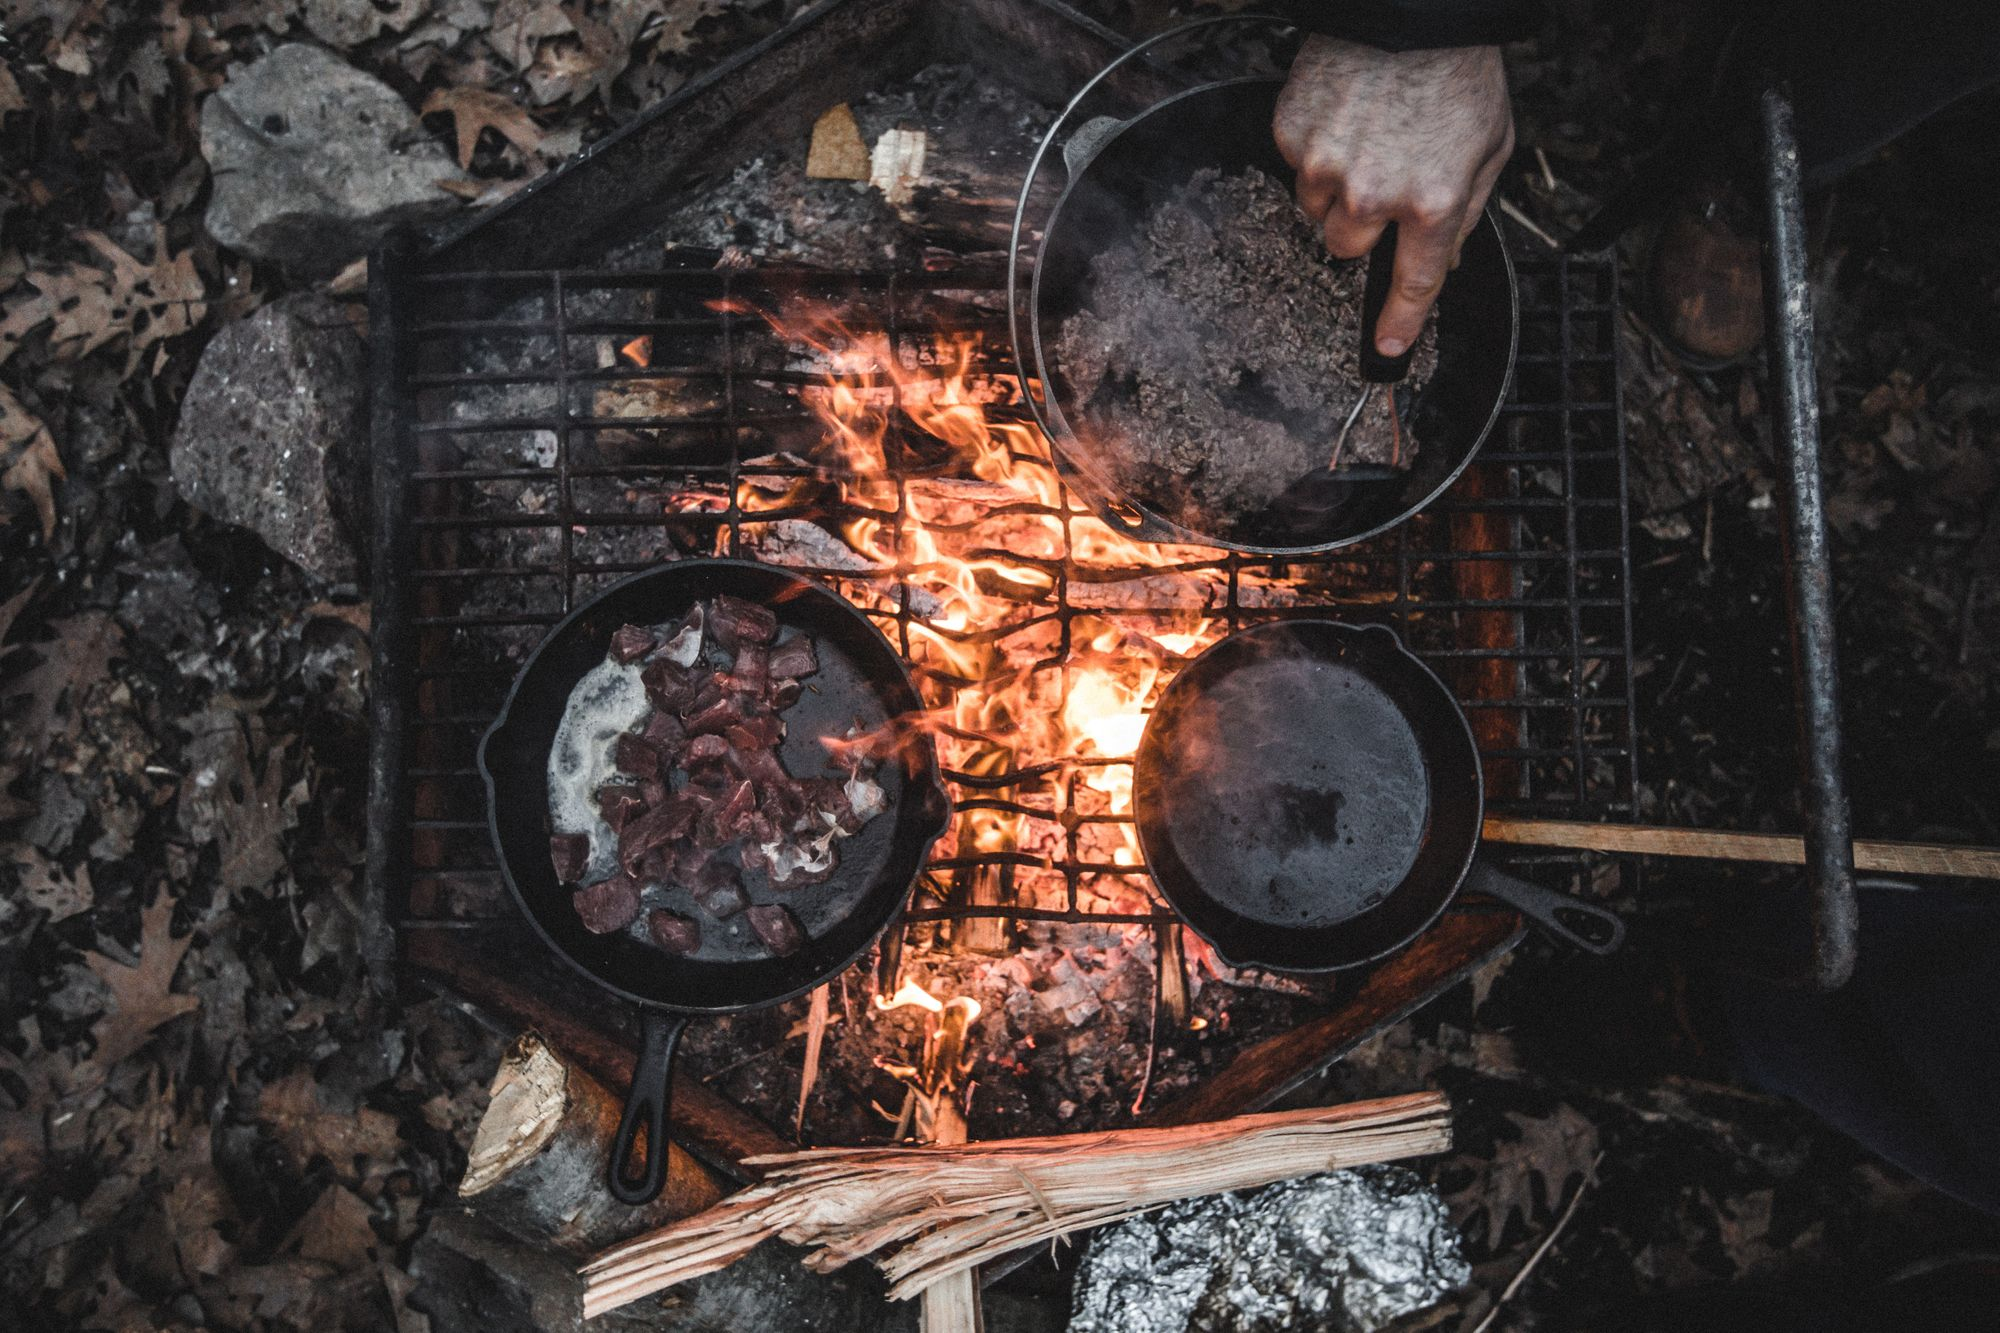 5 Camping Food Hacks To Make Easy Meals